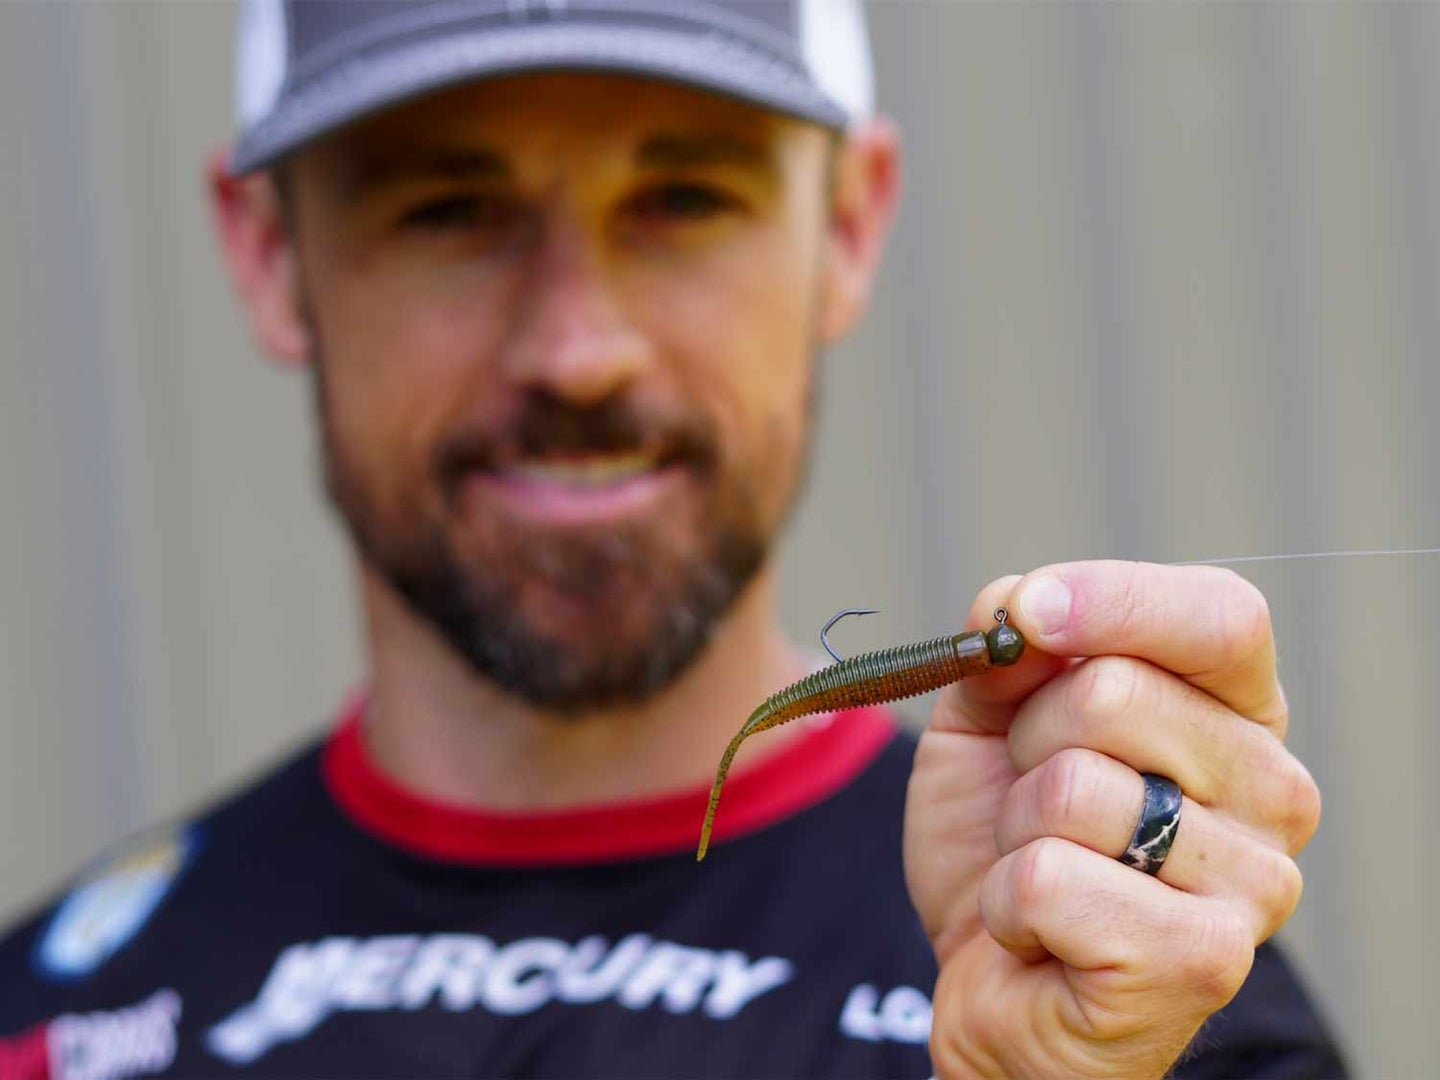 A bass fishing angler holding up his favorite fishing ned rig.